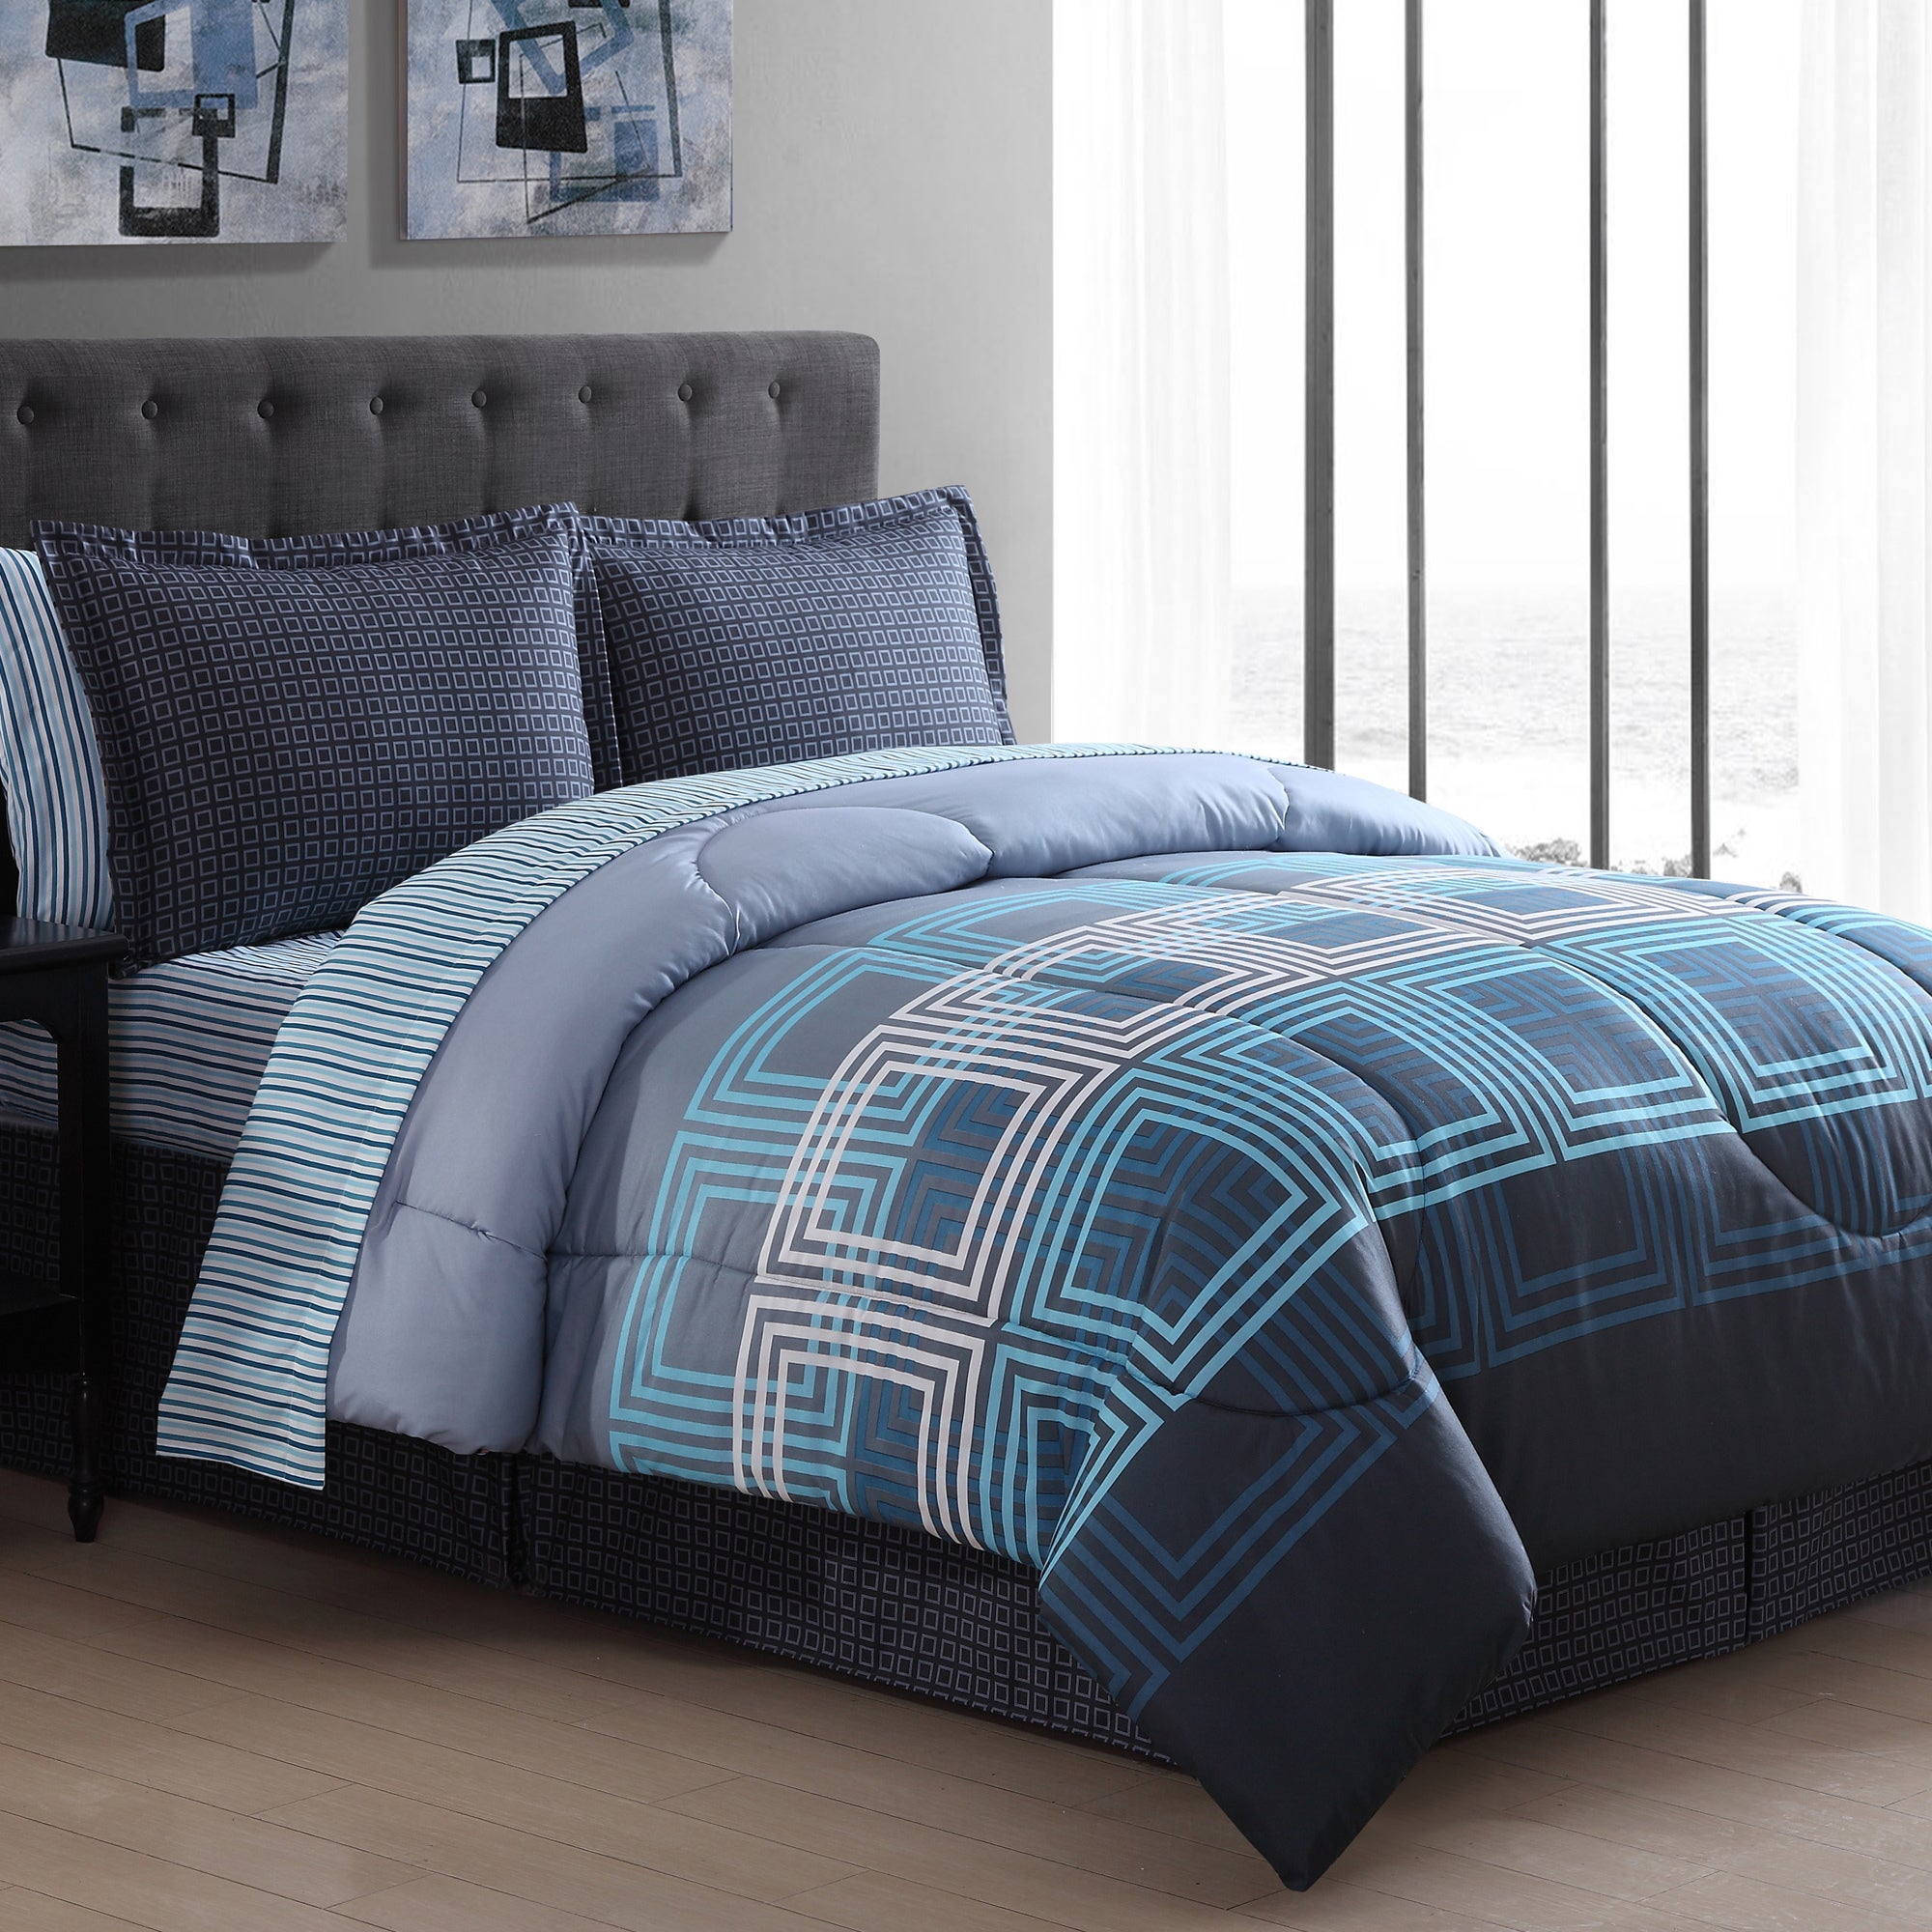 overstock bedding bed london set shipping on product piece intelligent bath free com design comforter